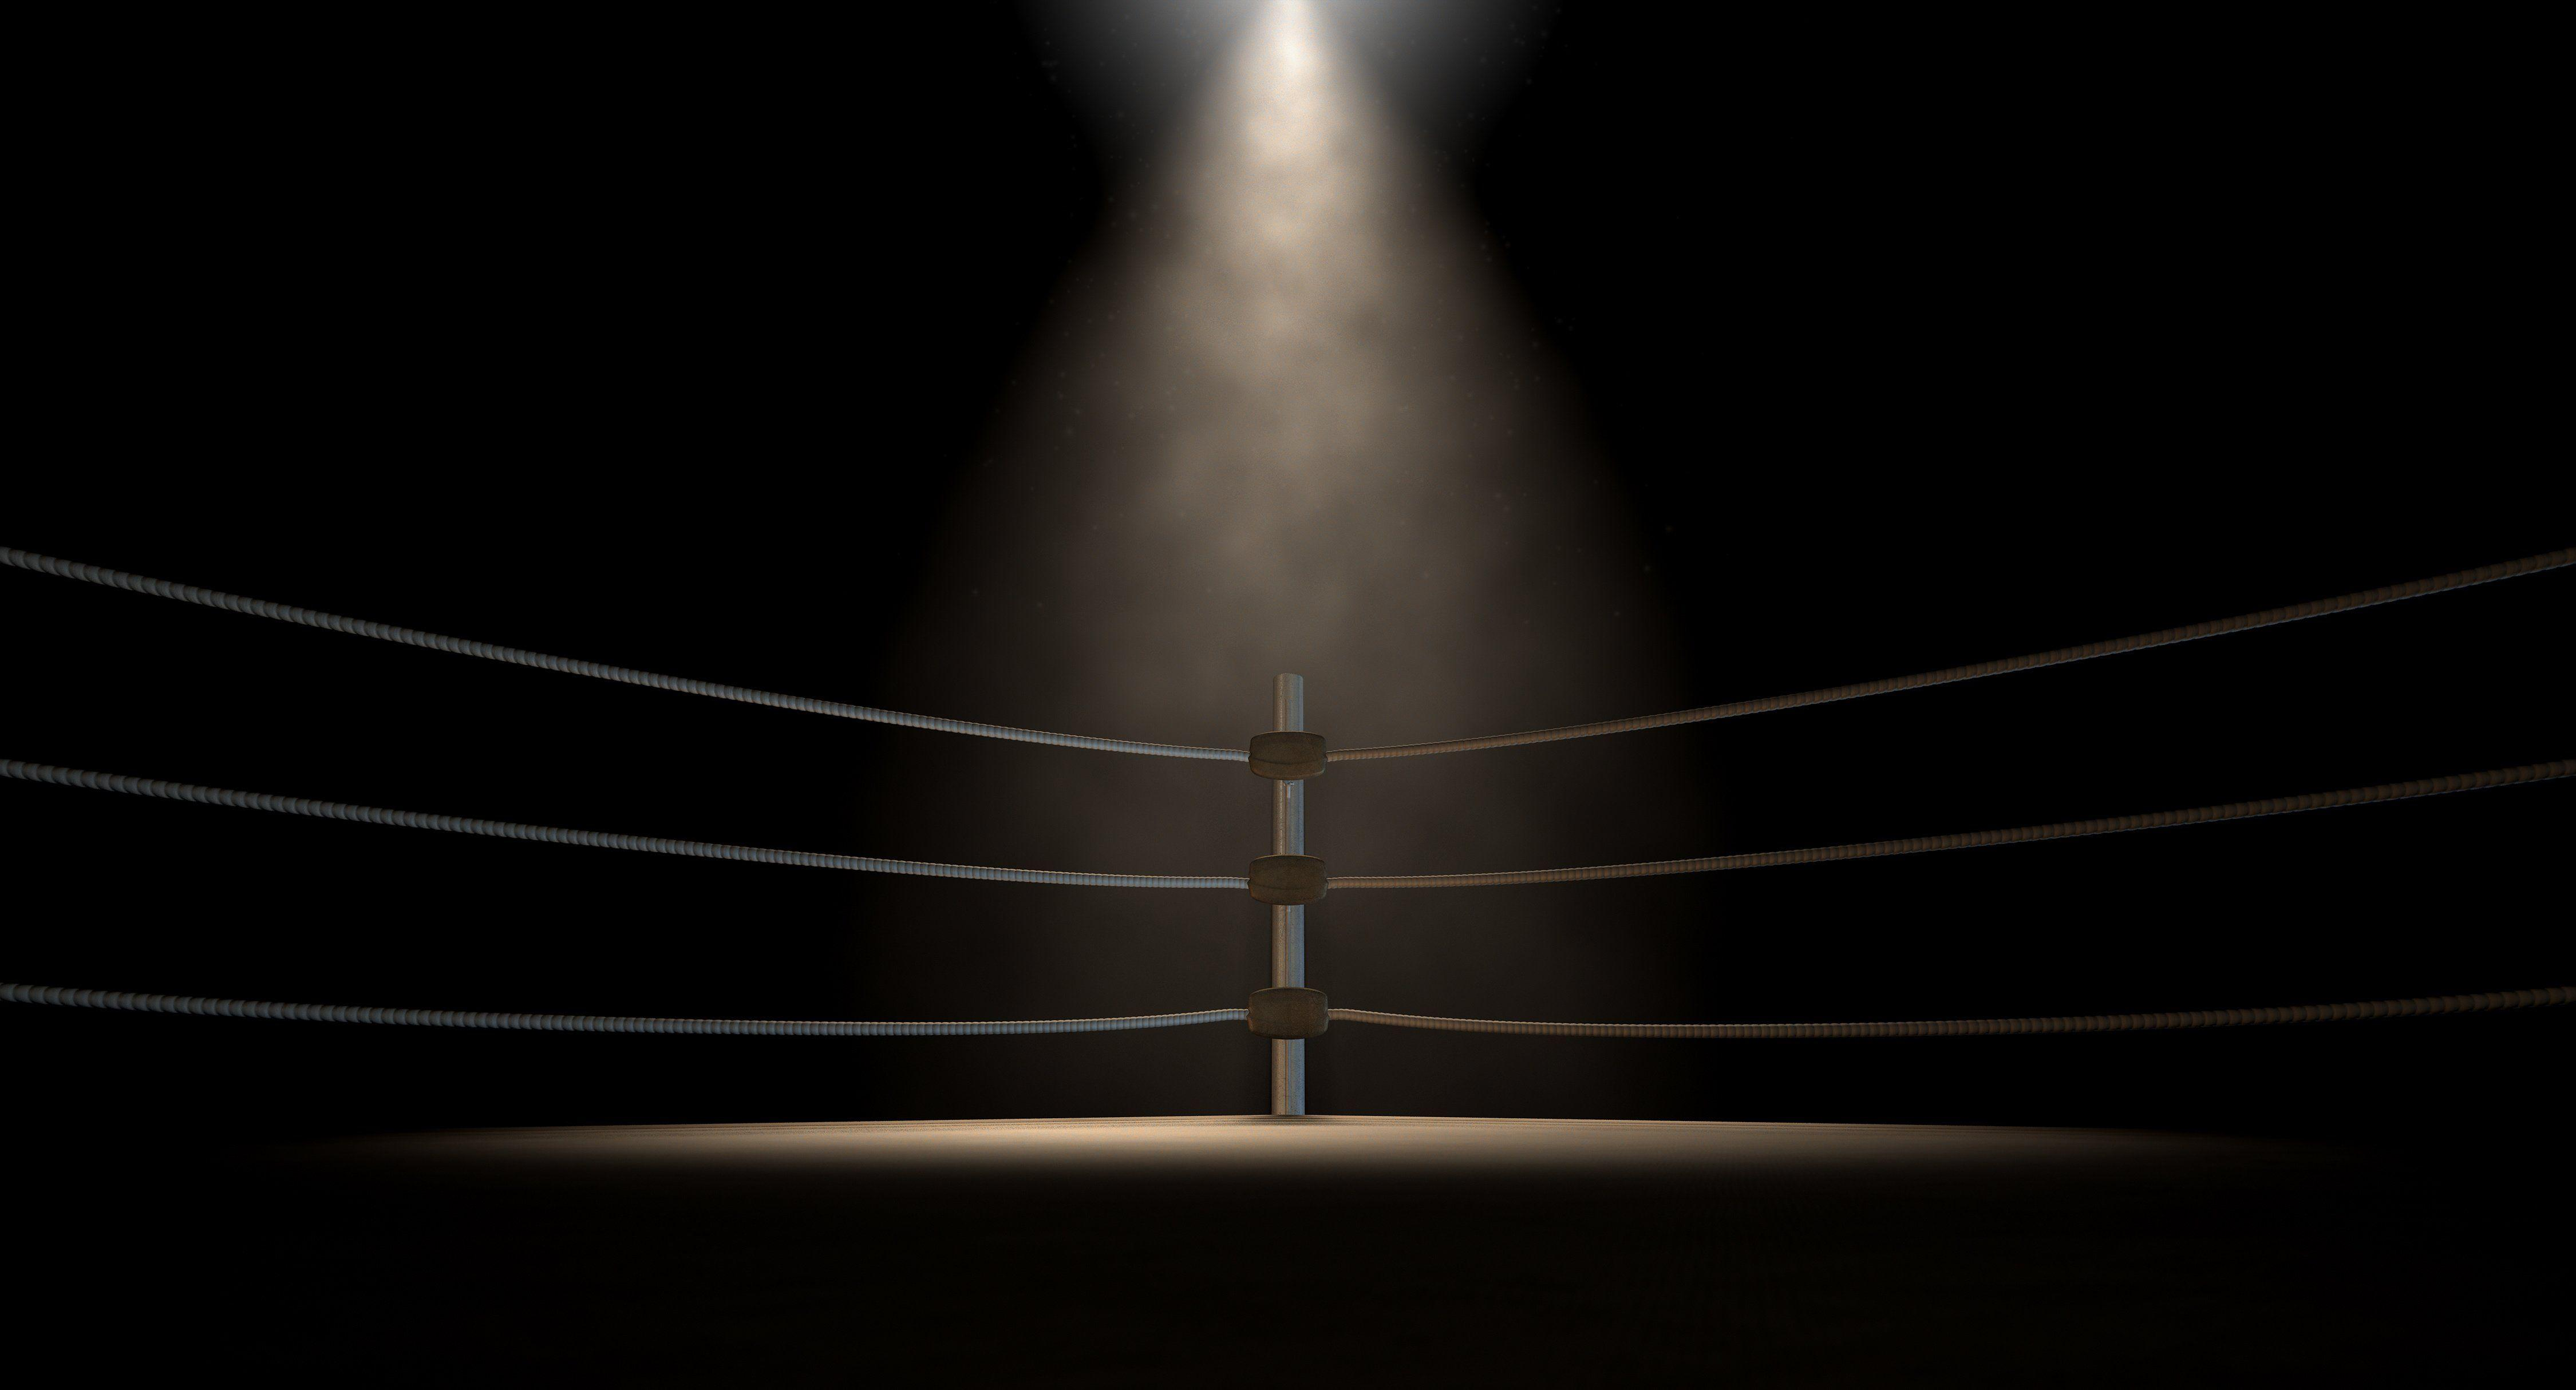 Boxing Ring Wallpapers - Wallpaper Cave